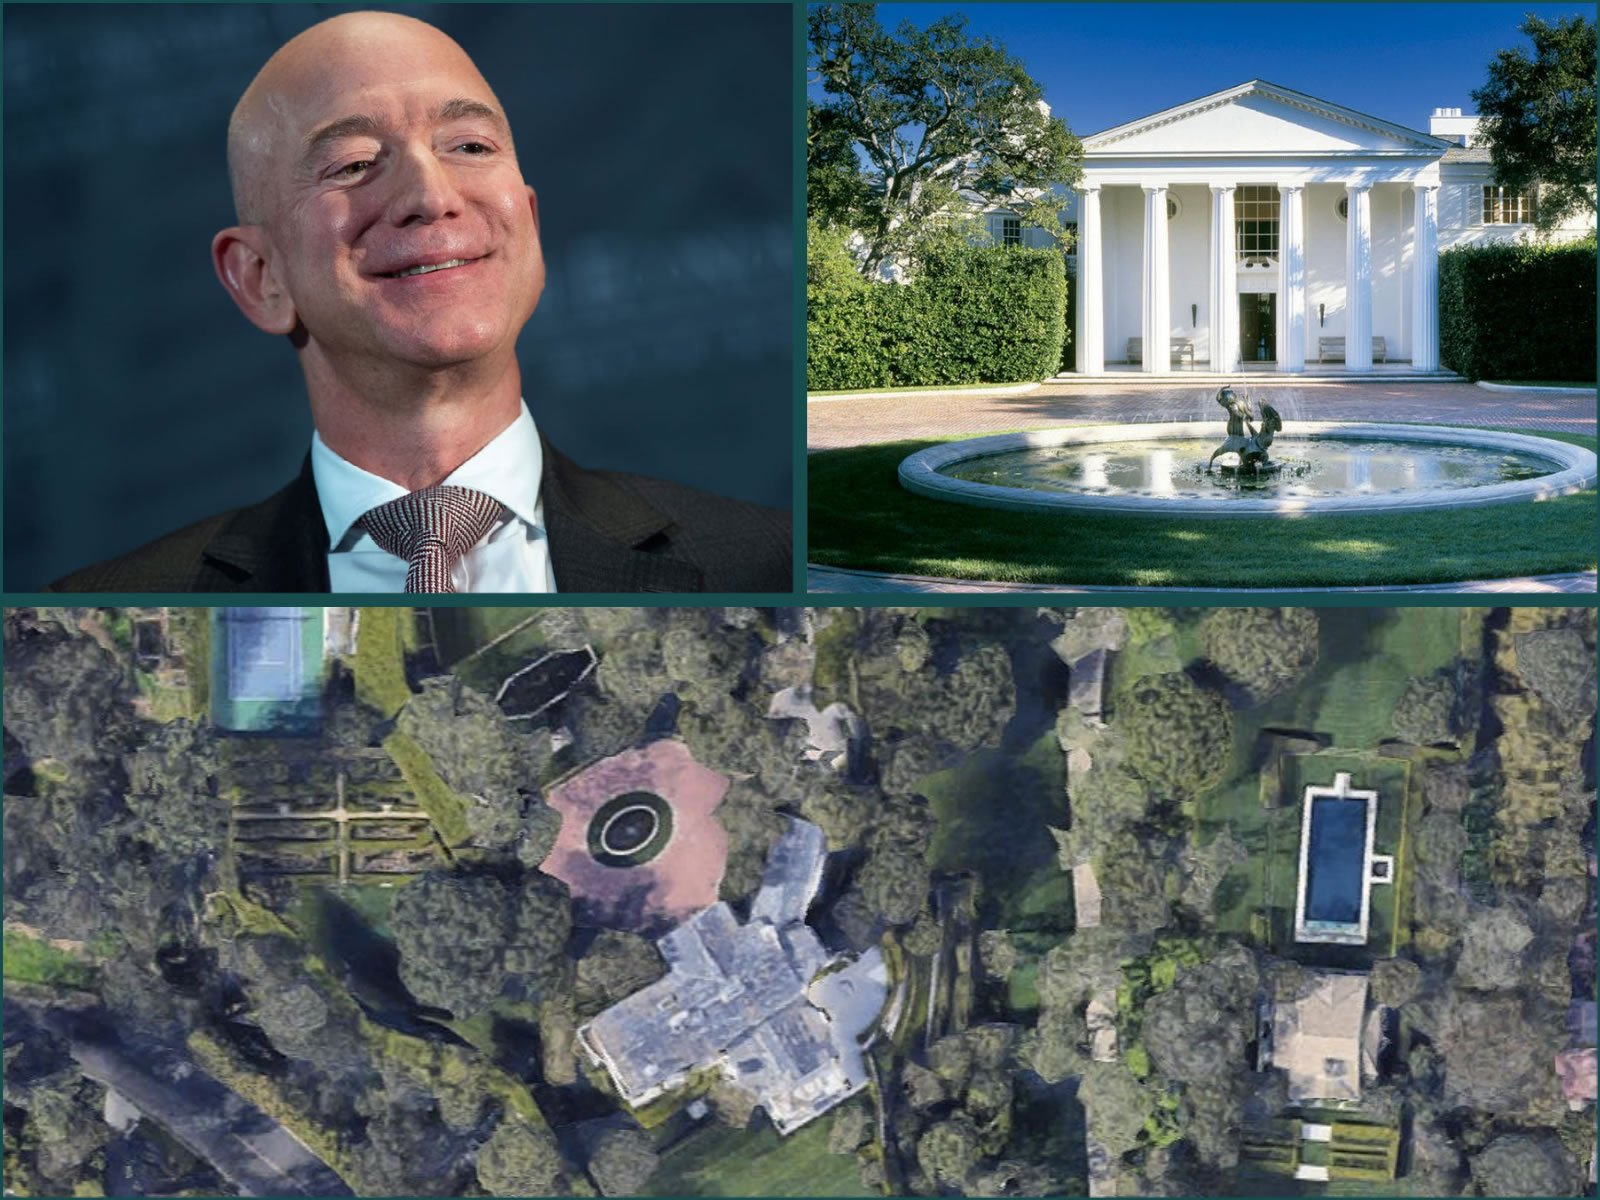 From Kim Kardashian to Elon Musk, these would be the staggering annual cleaning bills for the most expensive celebrity homes – At $205,000 per year, Drake's mansion tops them all